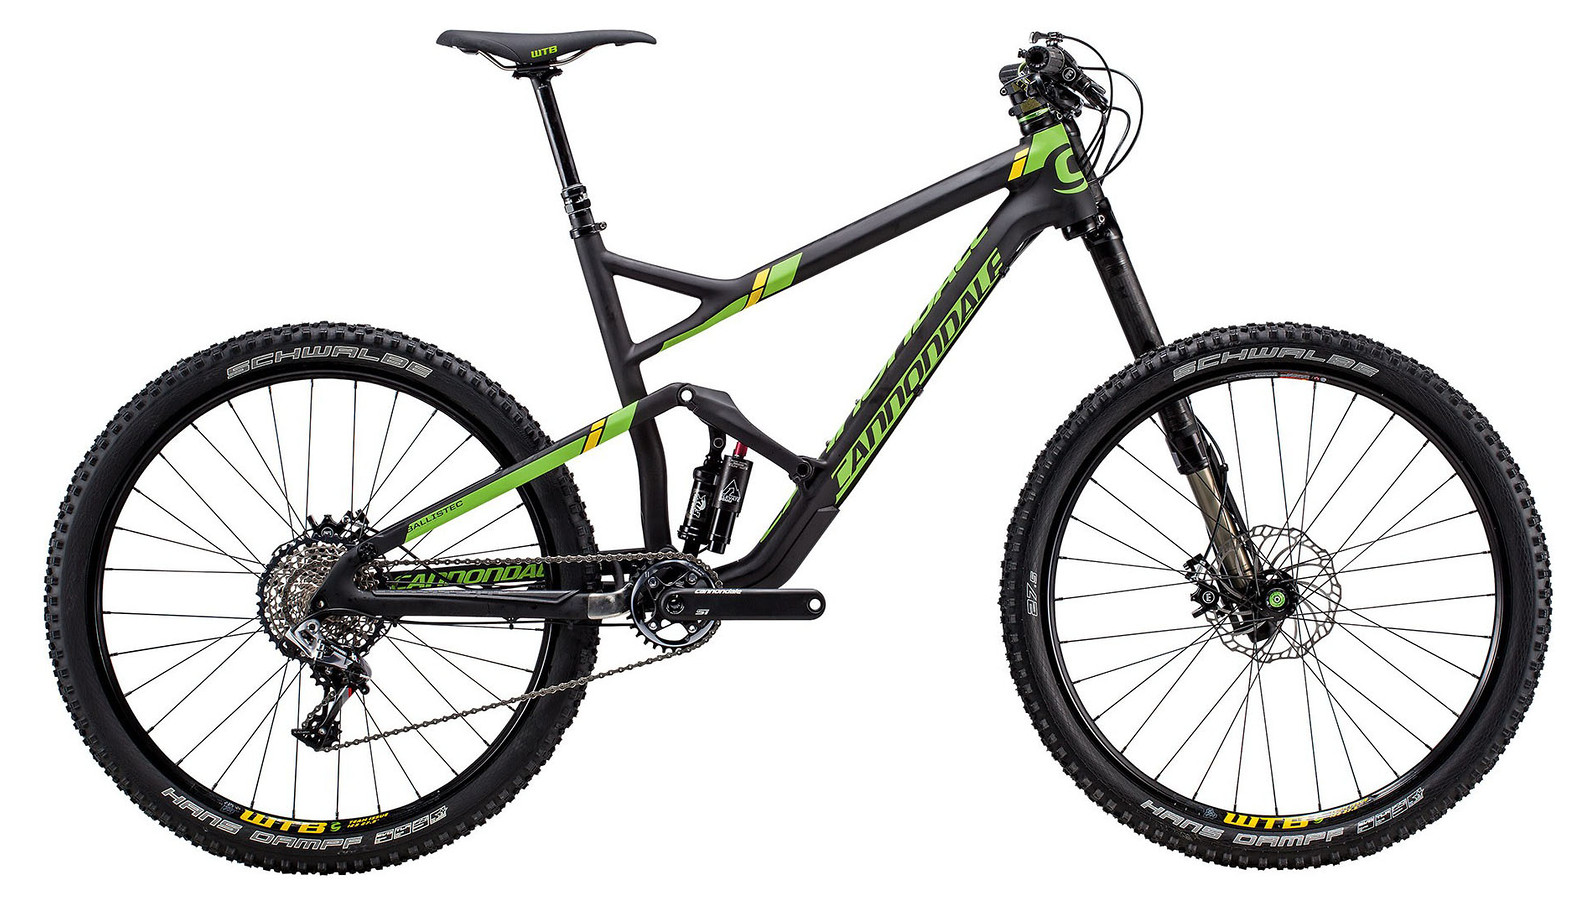 2015 Cannondale Jekyll 27.5 Carbon Team Bike